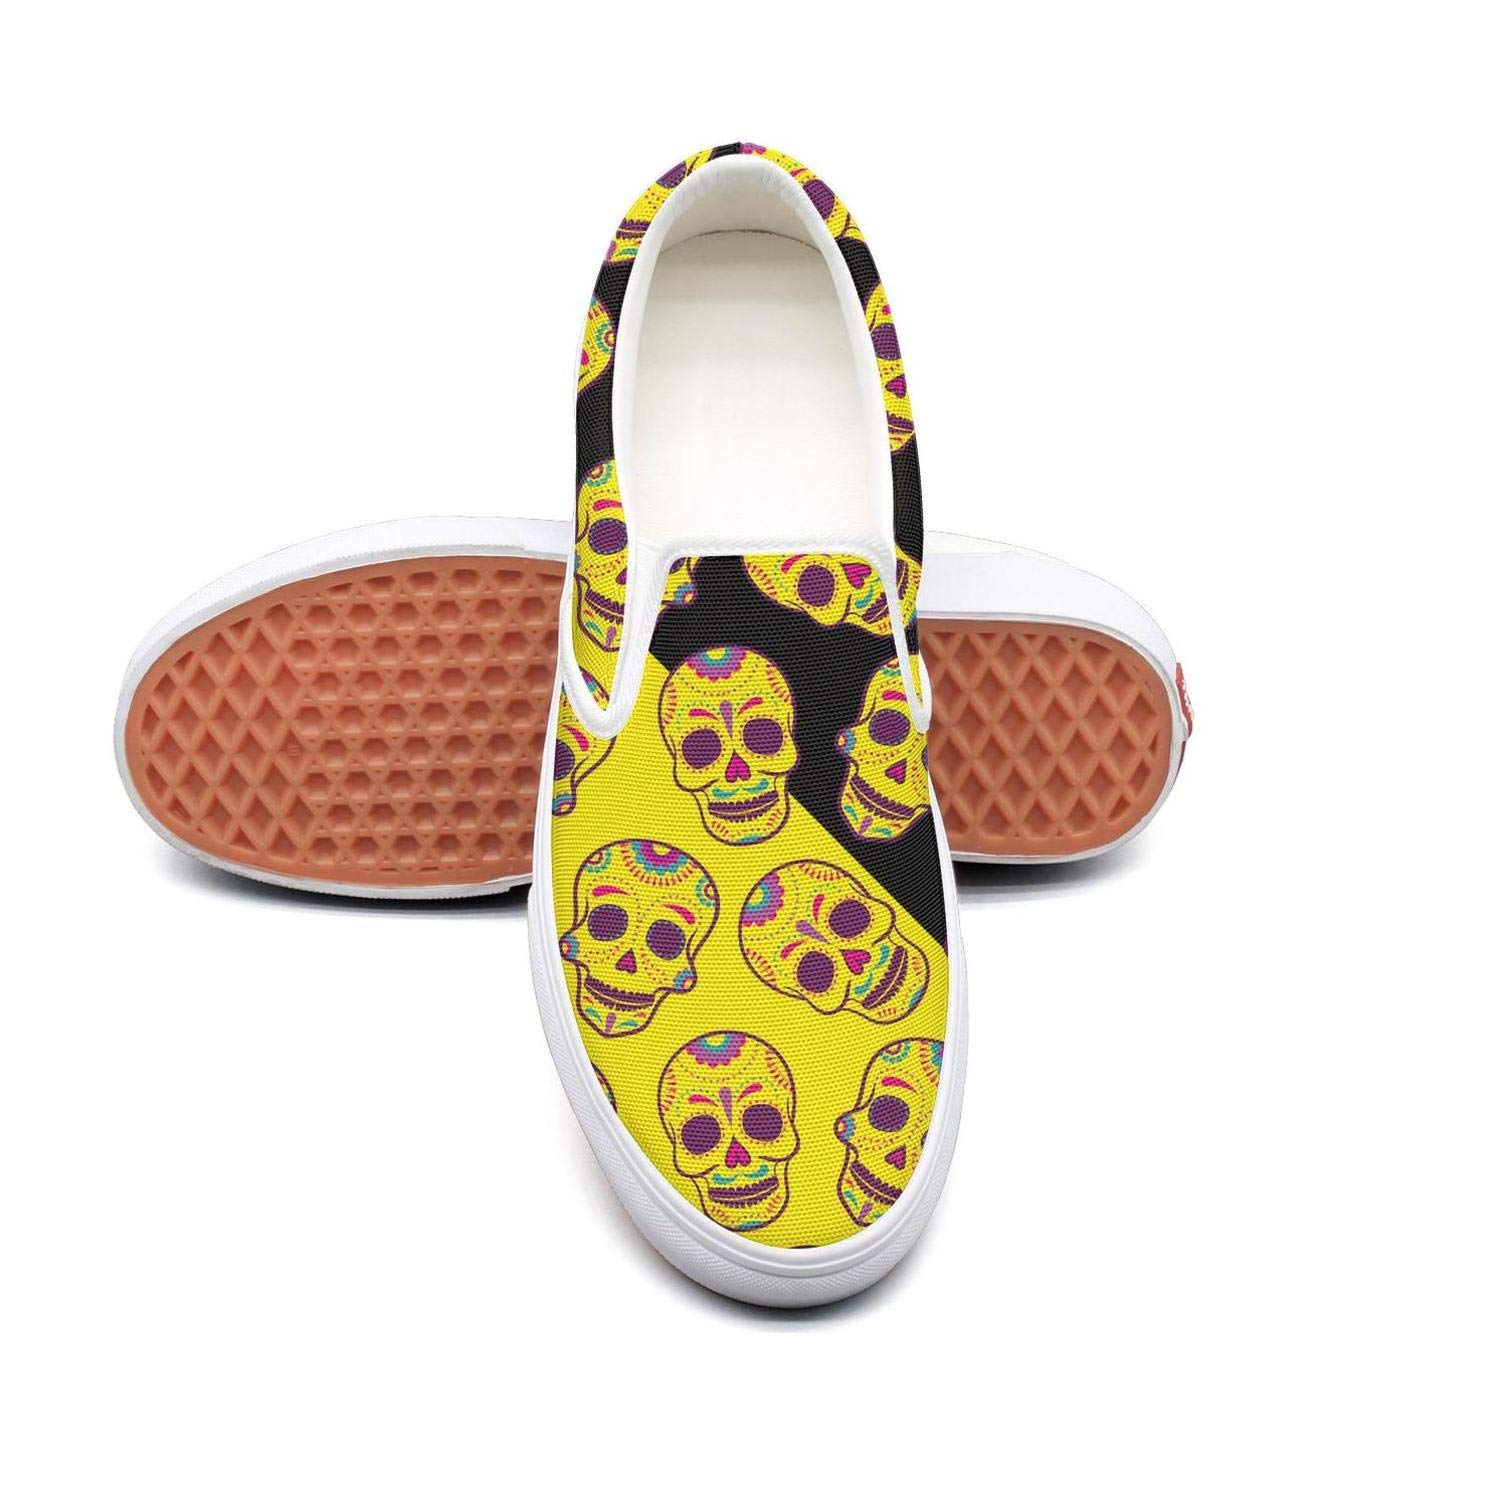 Back to School Dead Candy Skulls Slip On Canvas Upper Loafers Canvas Shoes for Women Round Toe